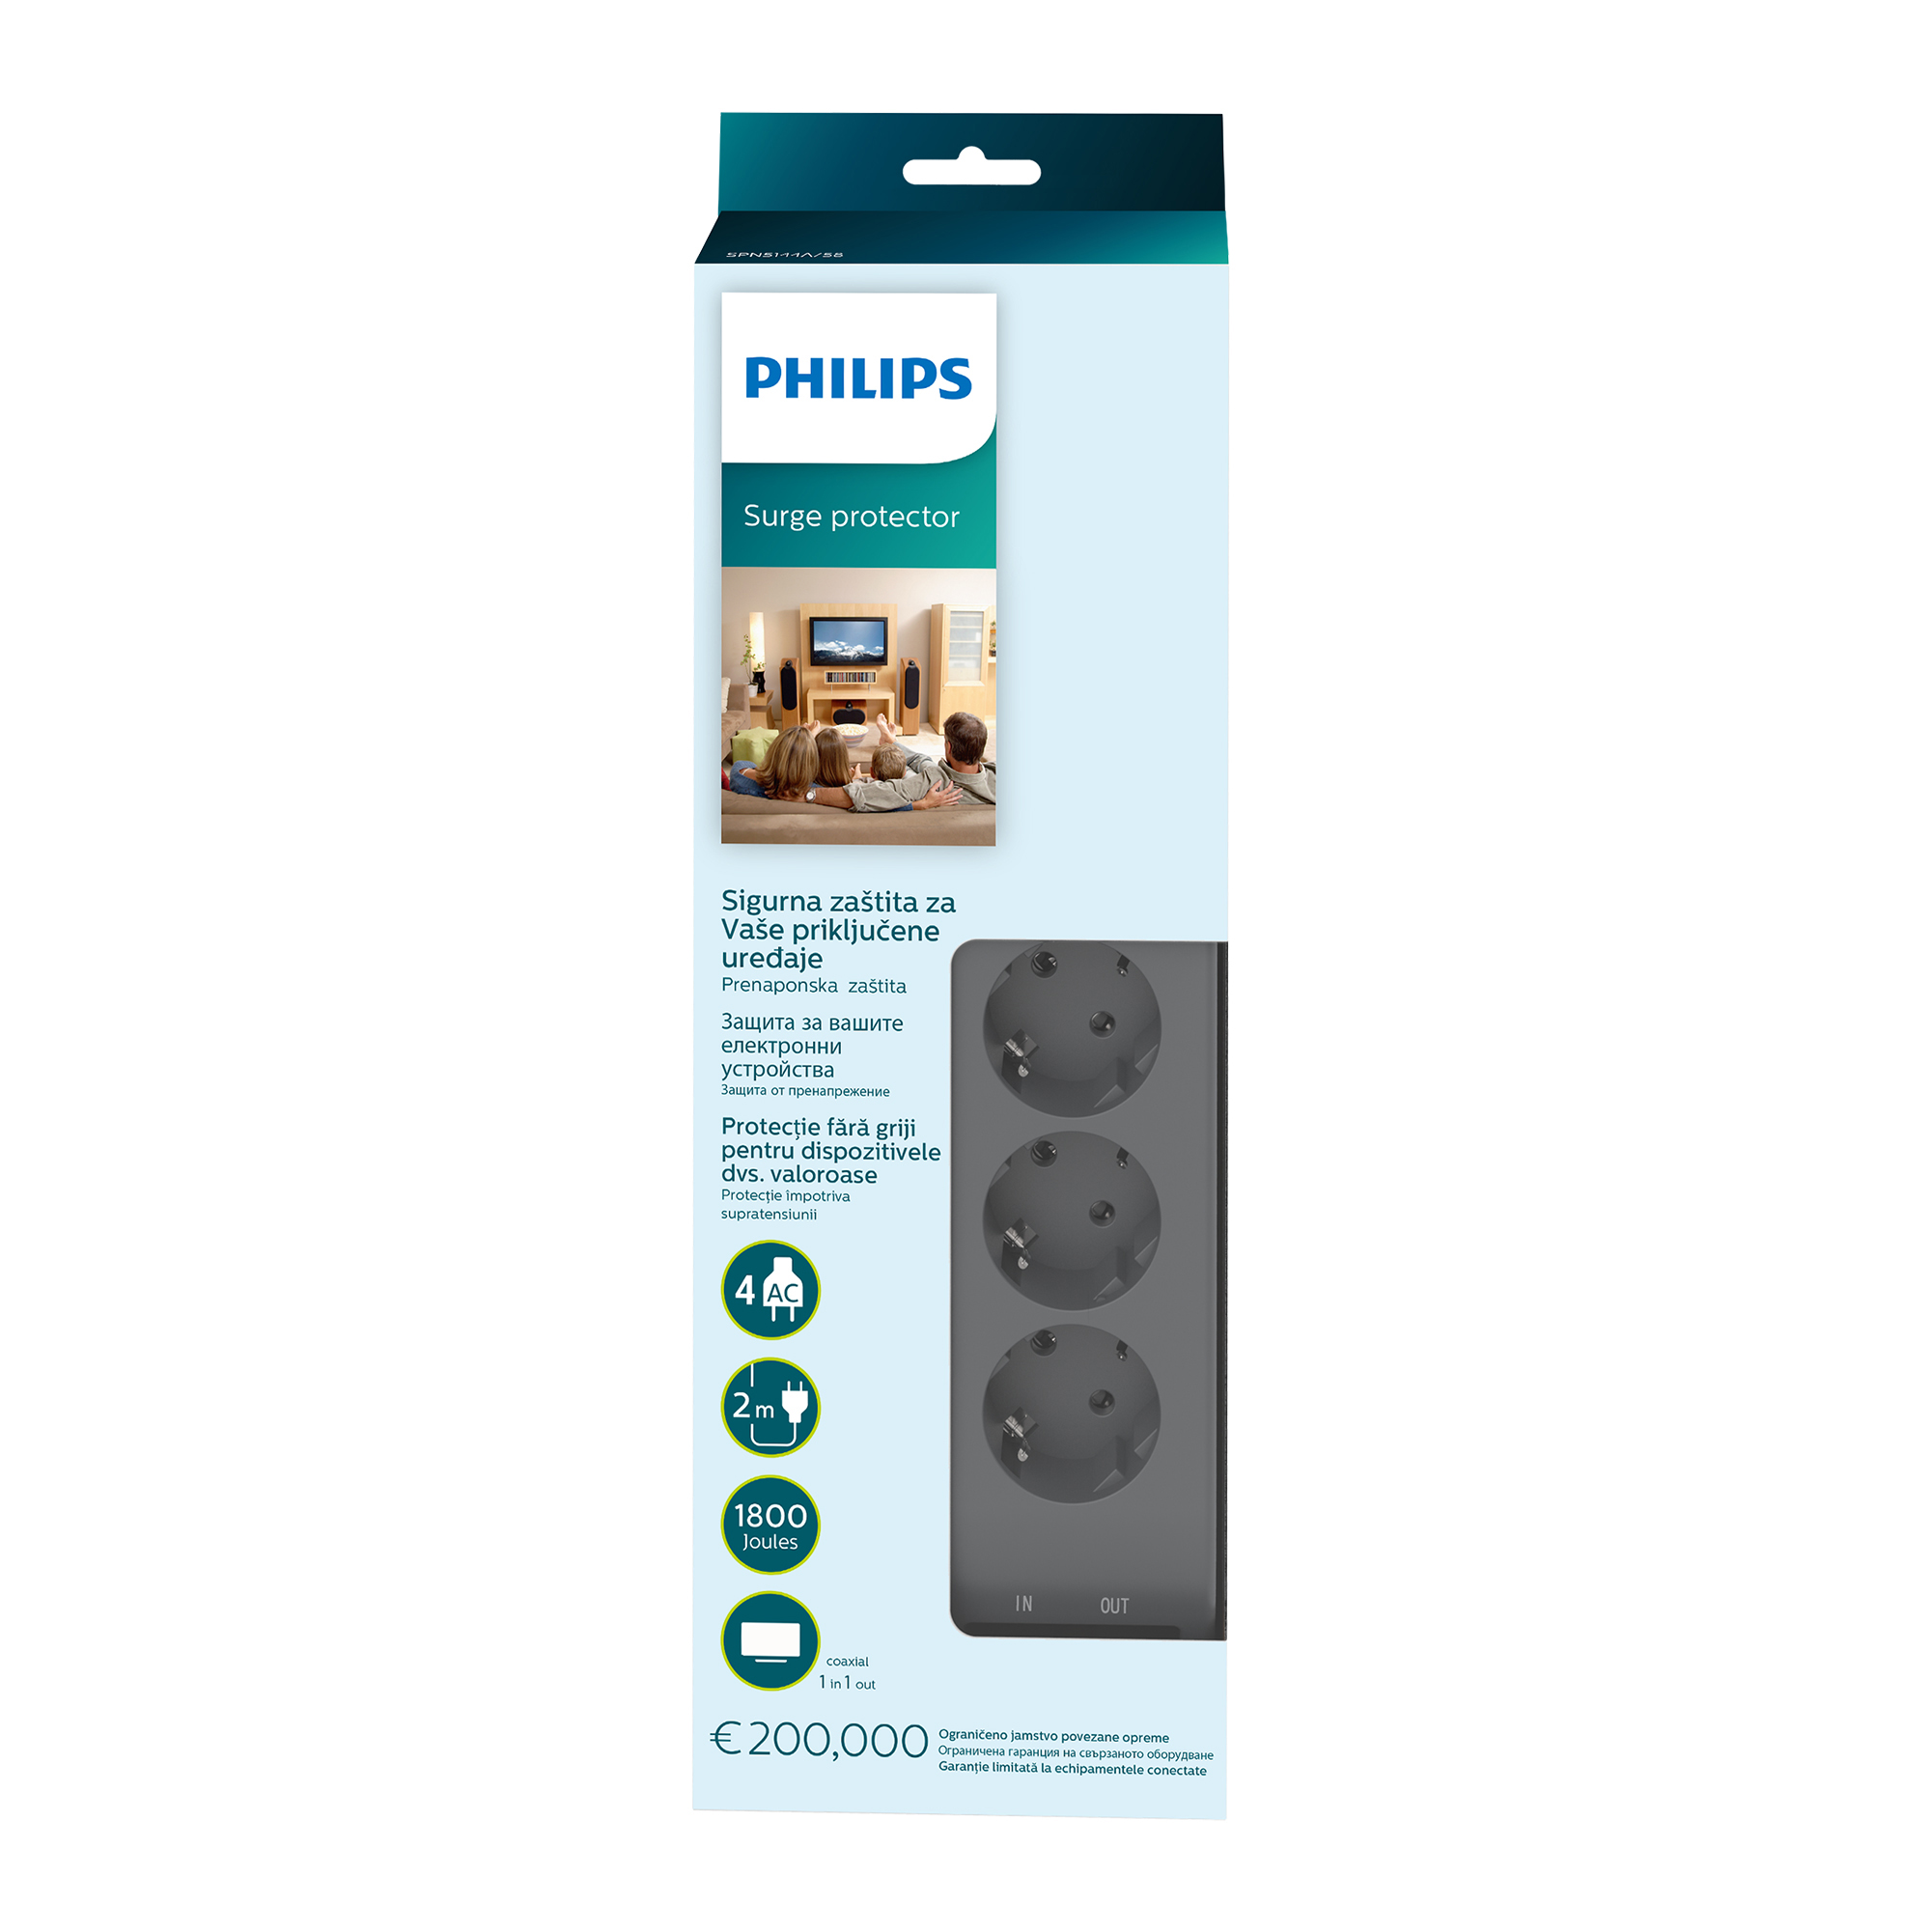 Philips Surge protector, 4 outlets, 10 A, 3 lines protection